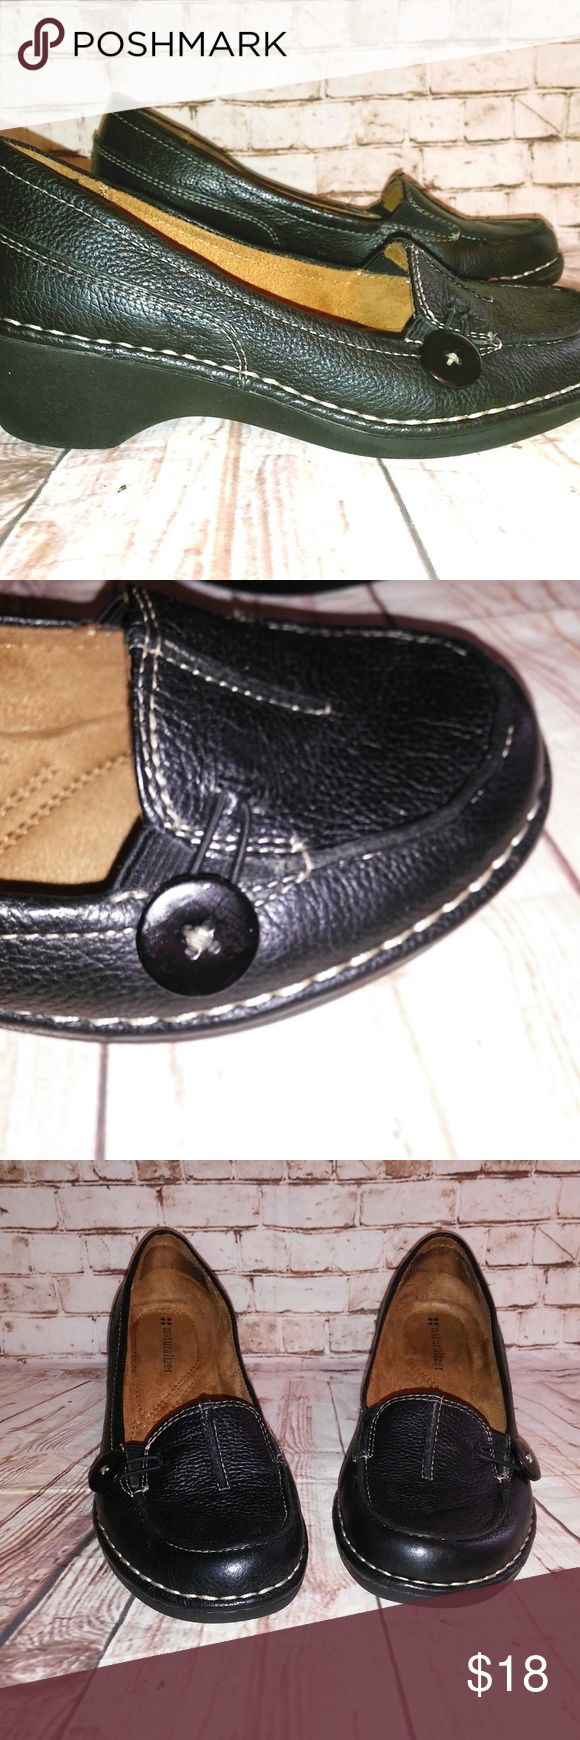 """Naturalizer Sharon Womens 6.5 Wedge Loafers Naturalizer Sharon Women's size 6.5 Black Pebbled Leather wedge loafer style pumps (2"""" heel) with decorative button. Great condition with minimal wear on soles. Previous owner put in heel guards that have been removed as pictured. Naturalizer Shoes Heels"""